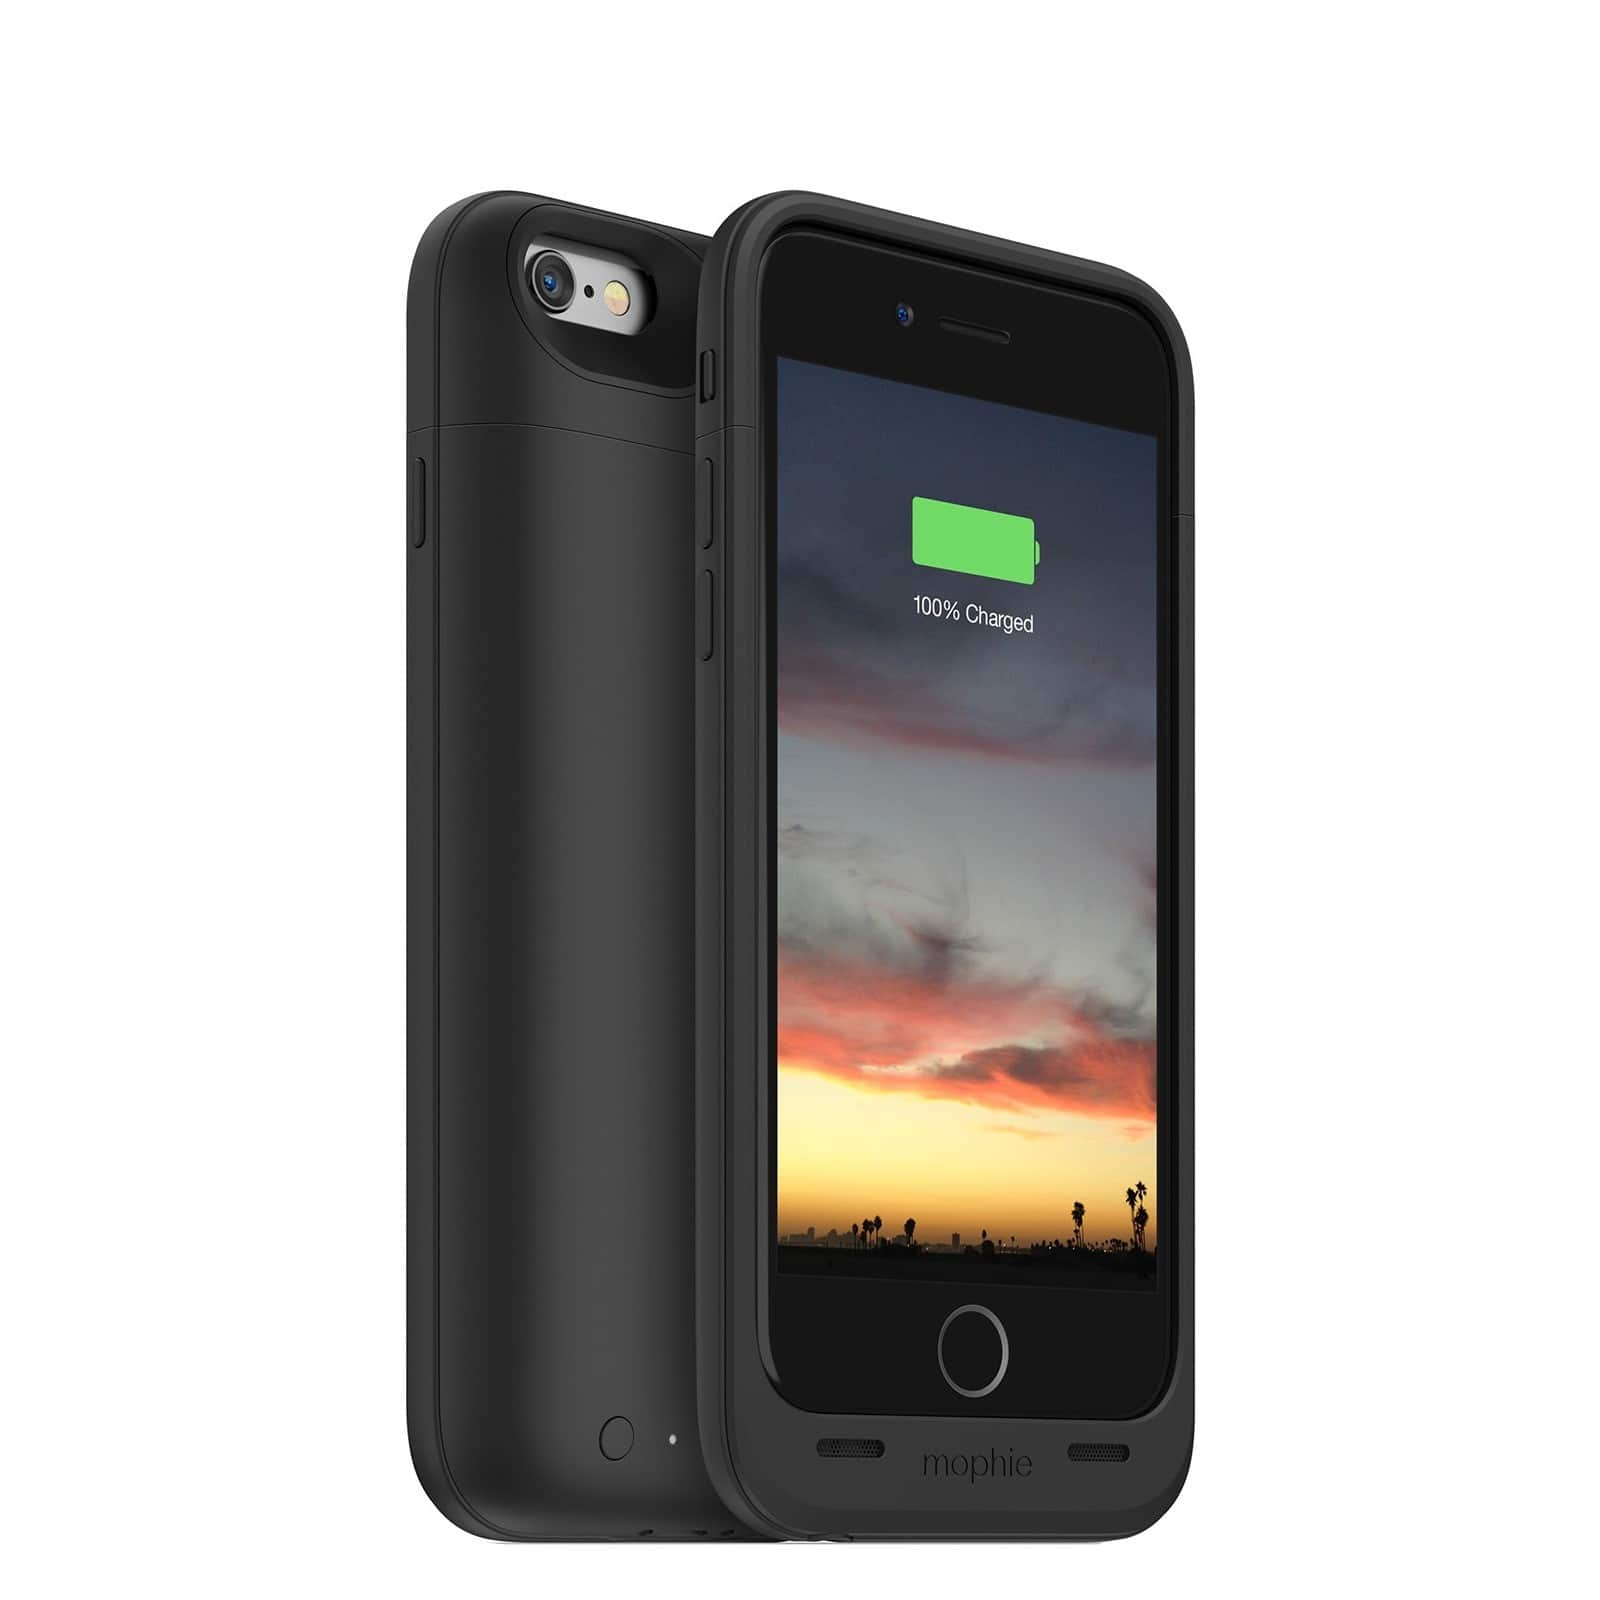 Mophie Juice Pack Air Battery Case for iPhone 6/6s (refurb) $15 + free s/h